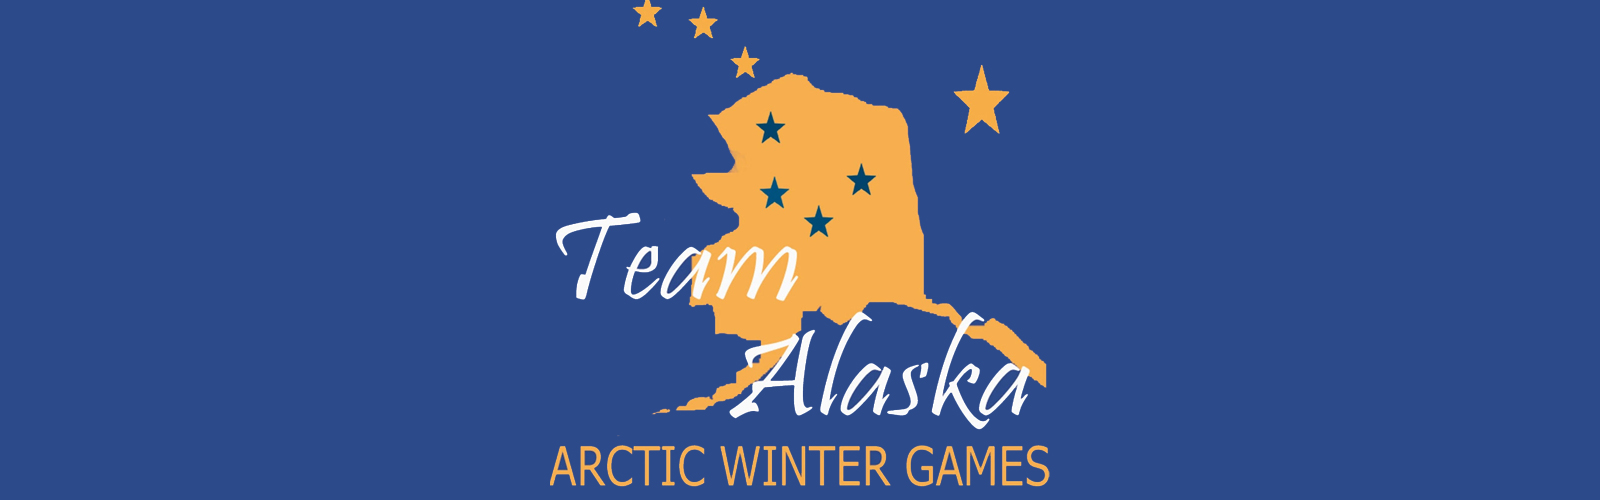 Arctic Winter Games